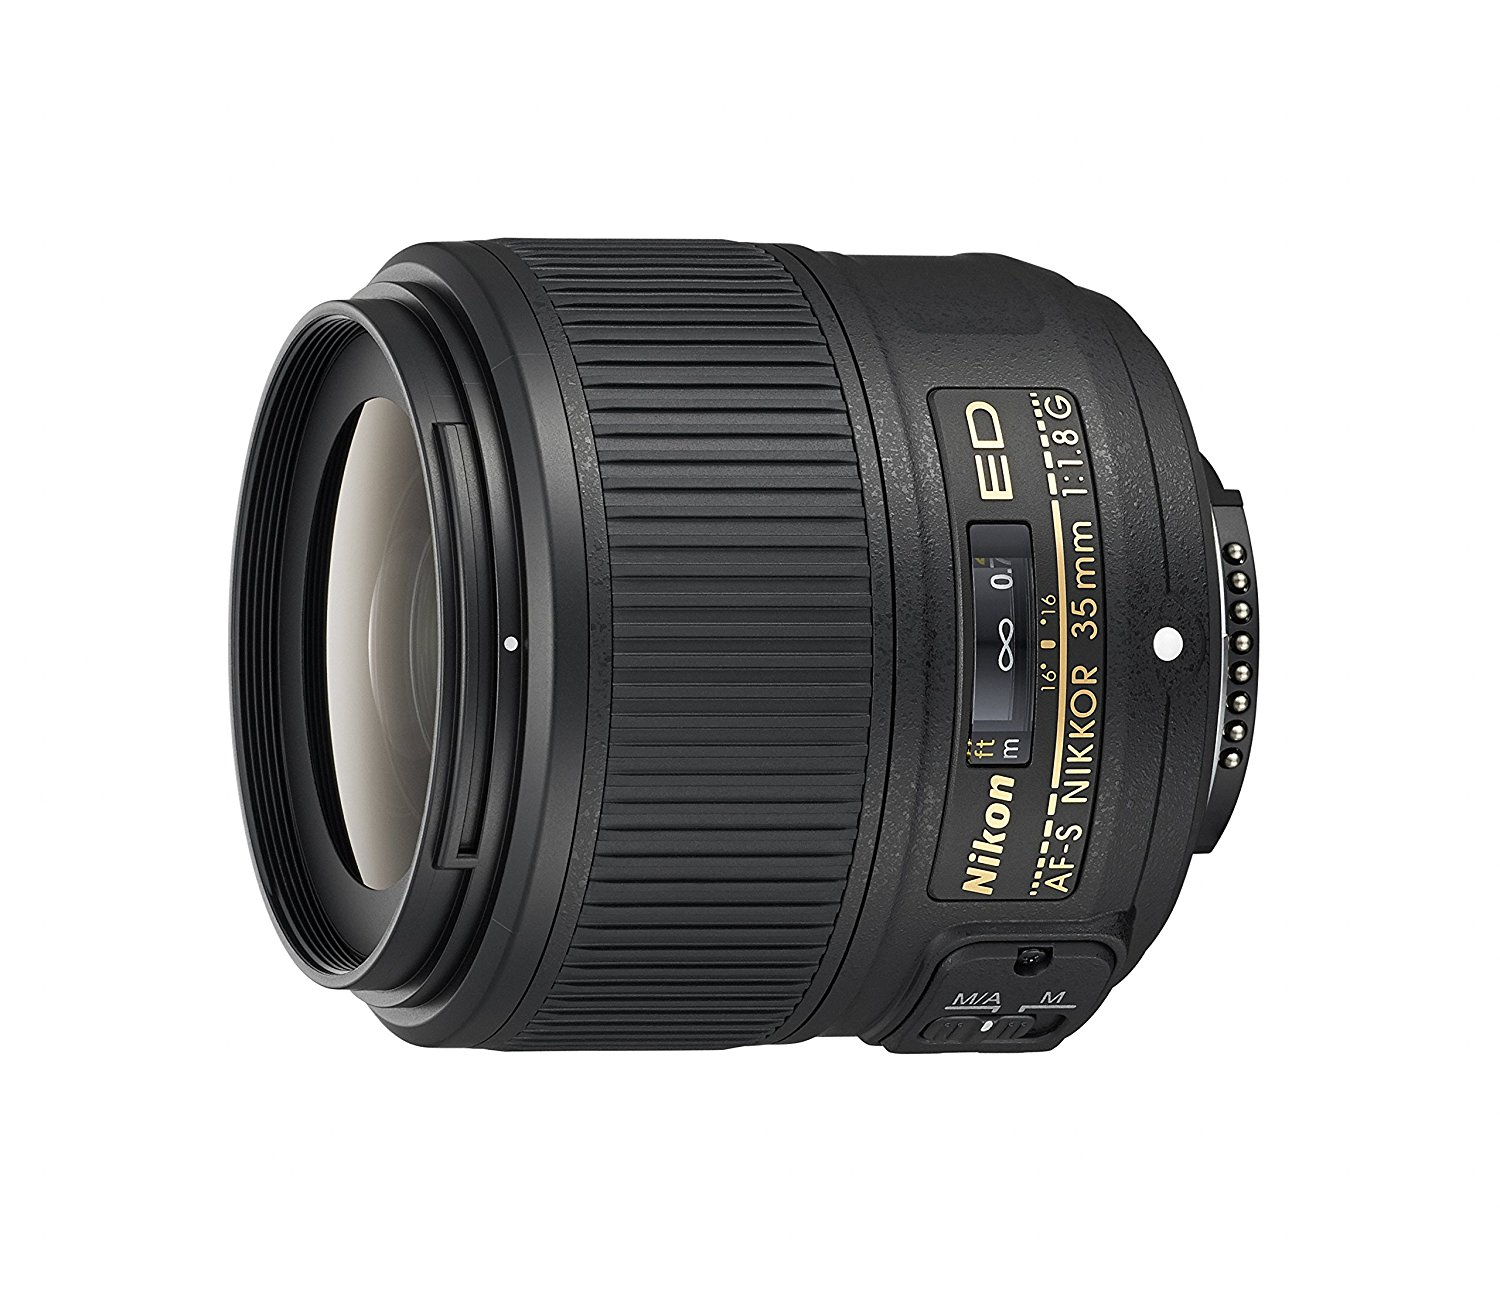 nikkor 35mm fixed lens for full frame nikon